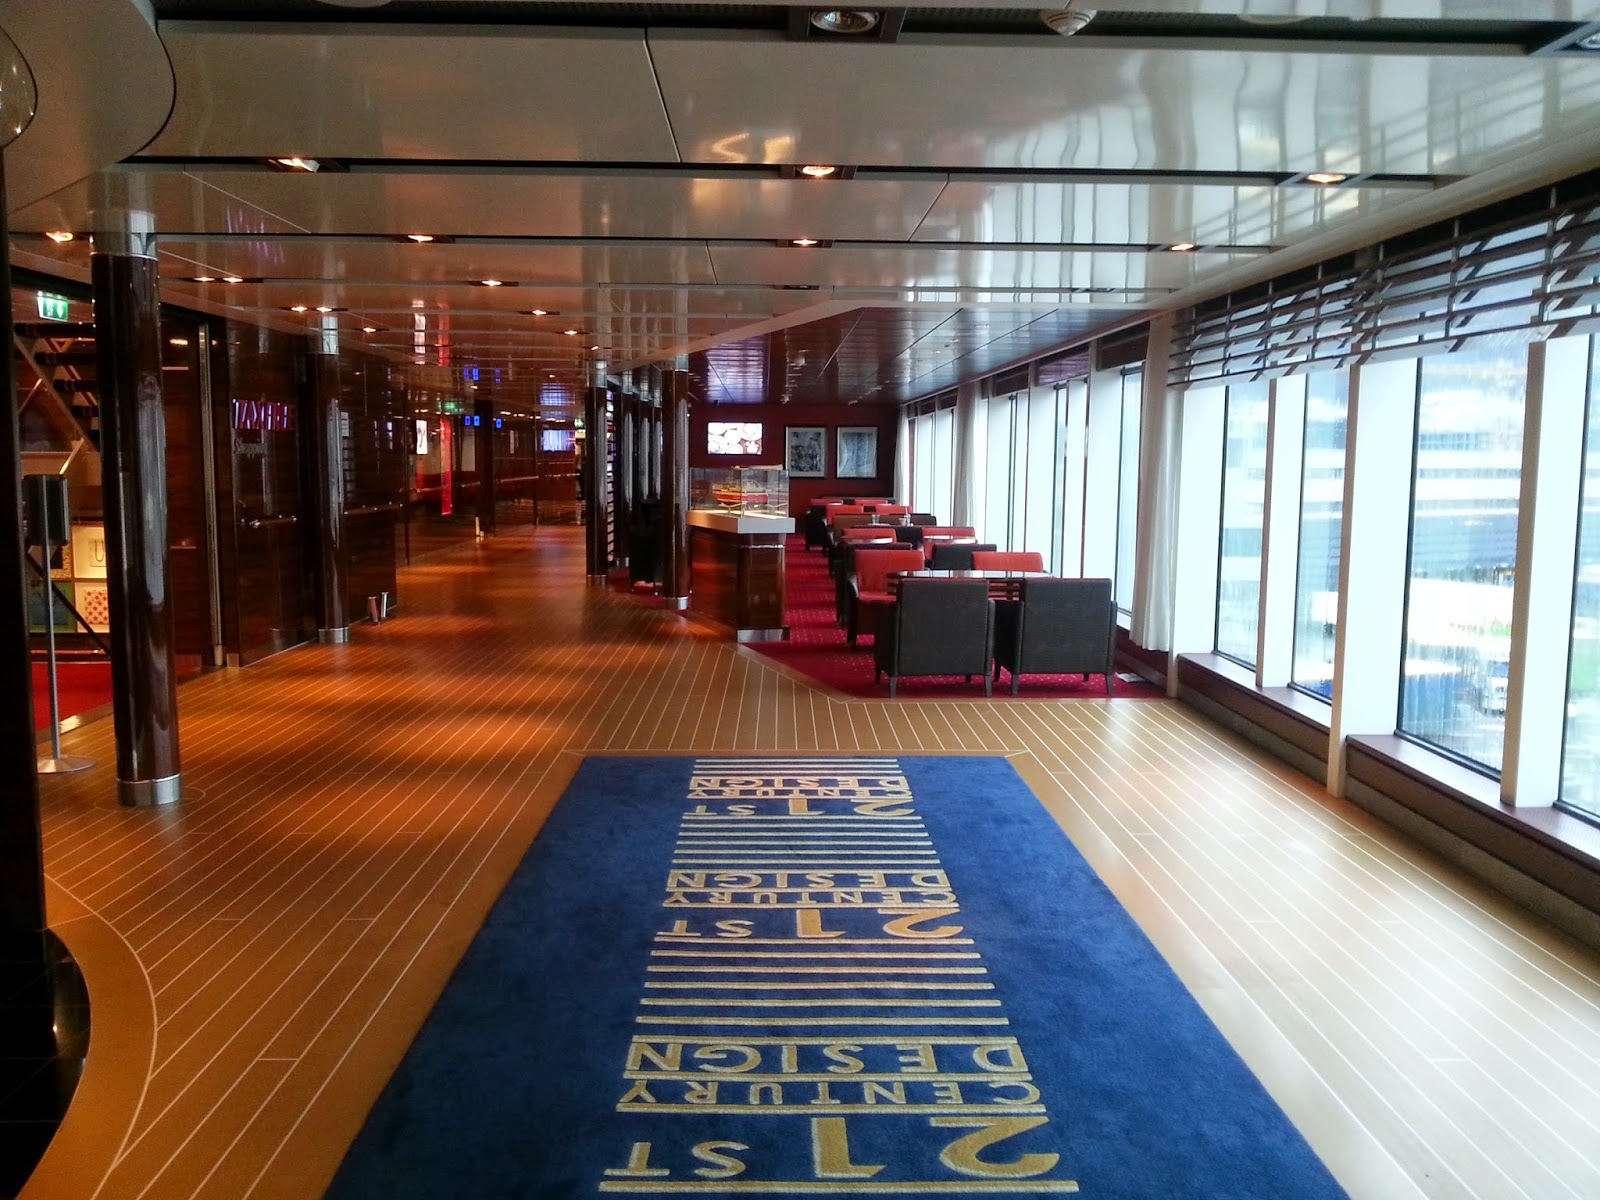 MS Stavangerfjord Bergensfjord Cruise Ferry - Interior Seating Area